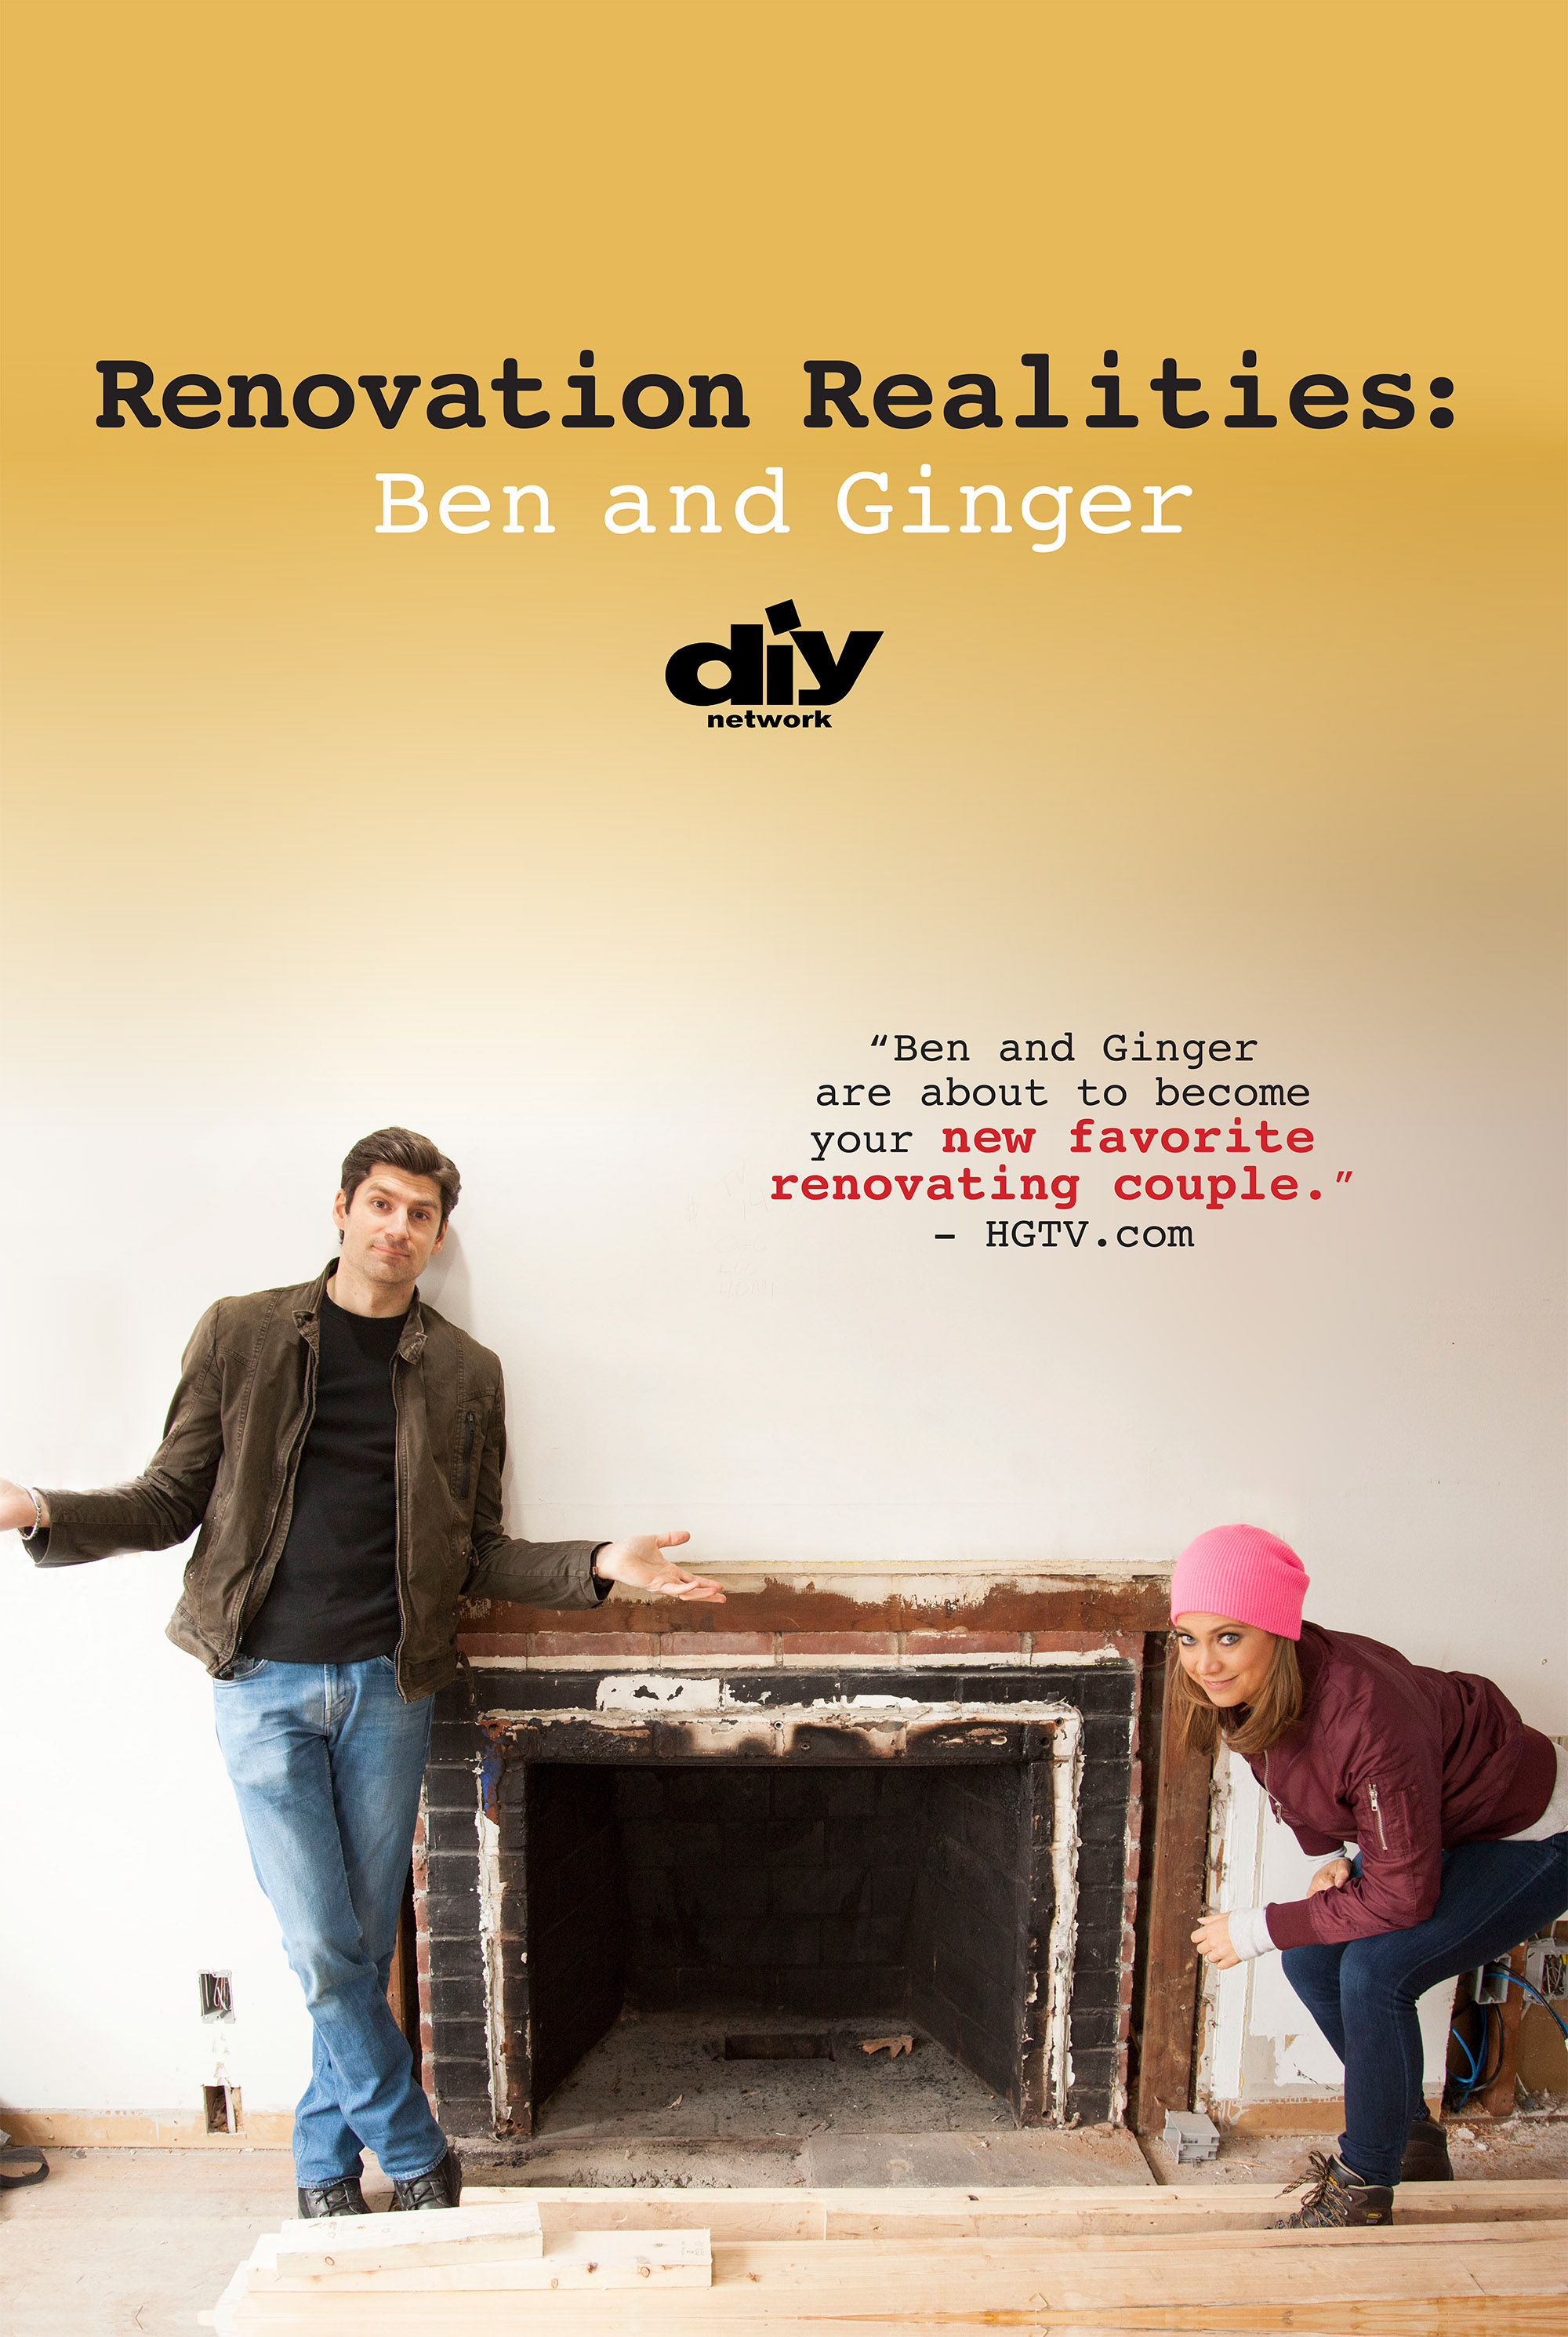 Renovation Realities: Ben and Ginger (2017)